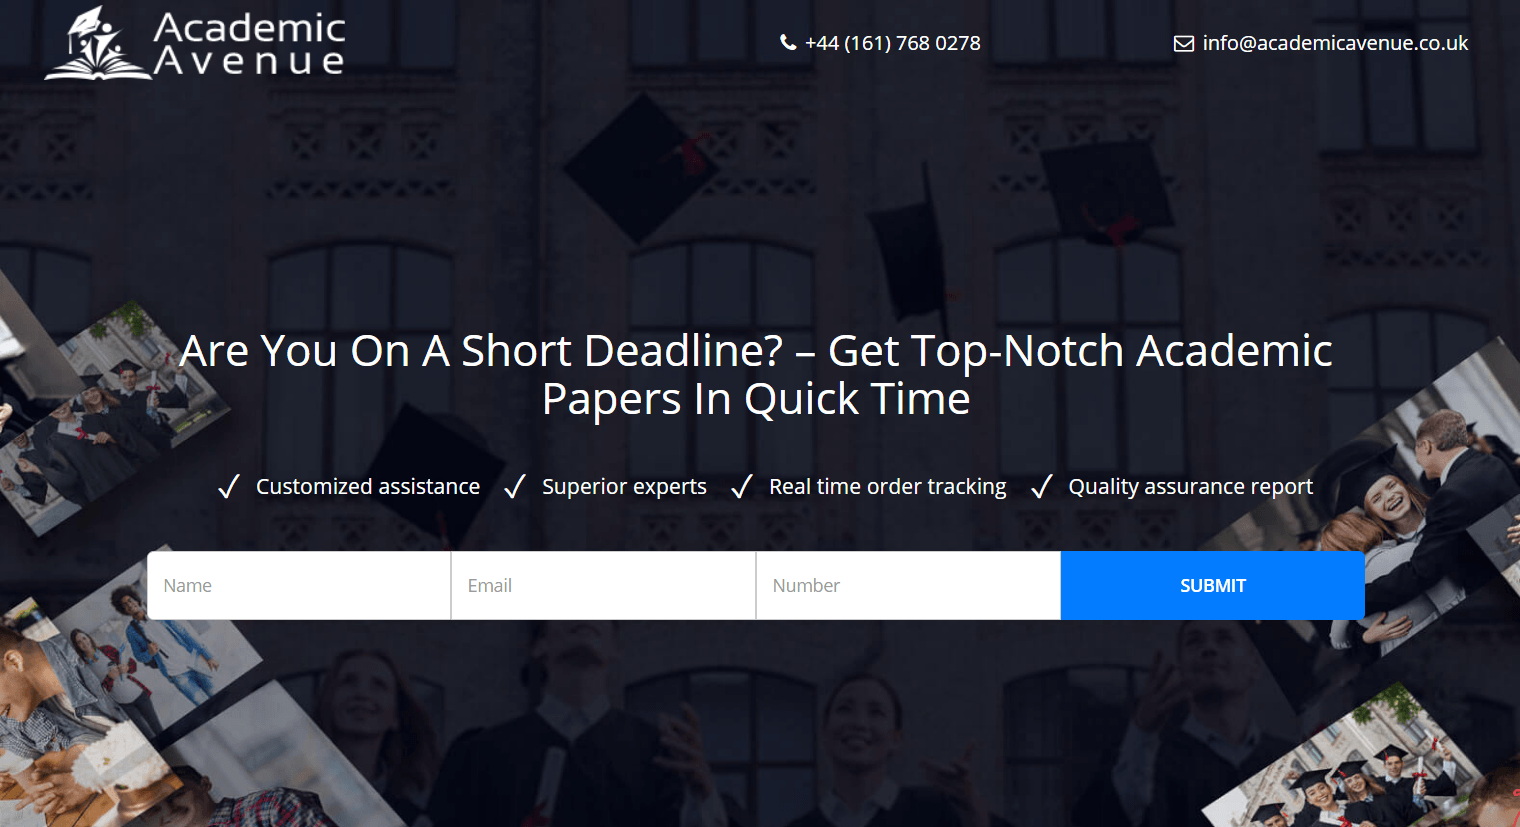 academicavenue.co.uk